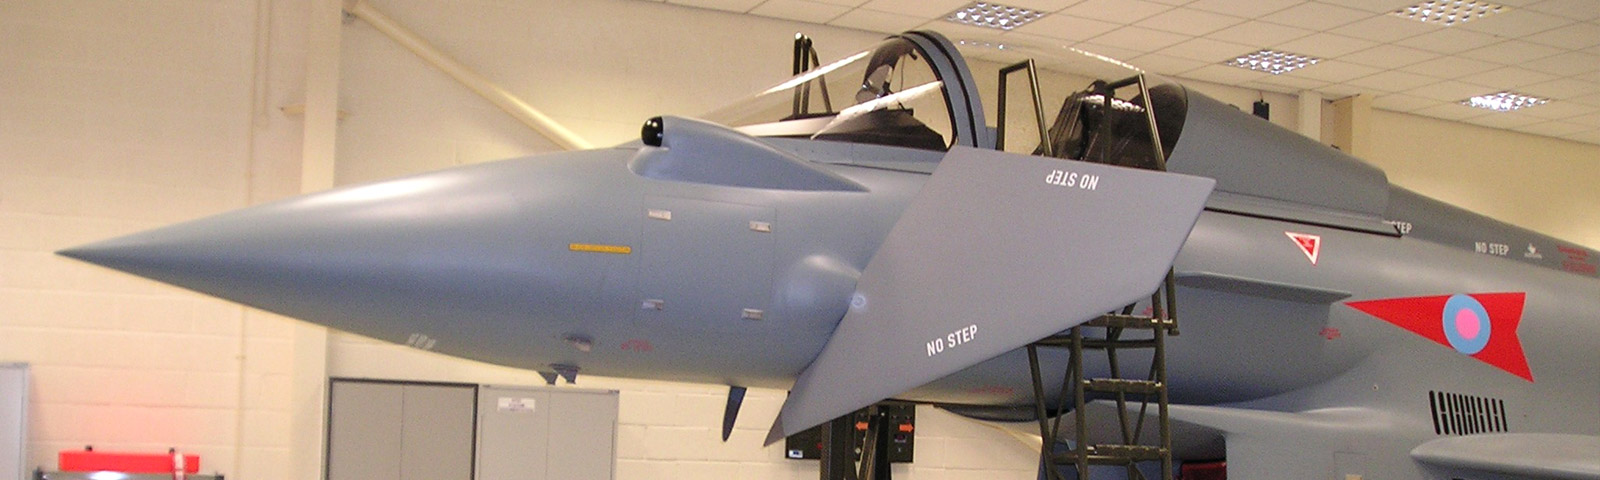 <h1>SPECIALIST TRAINING SIMULATORS FOR DEFENCE</h1><a href='/us/defence/simulators/'>Find out more</a>